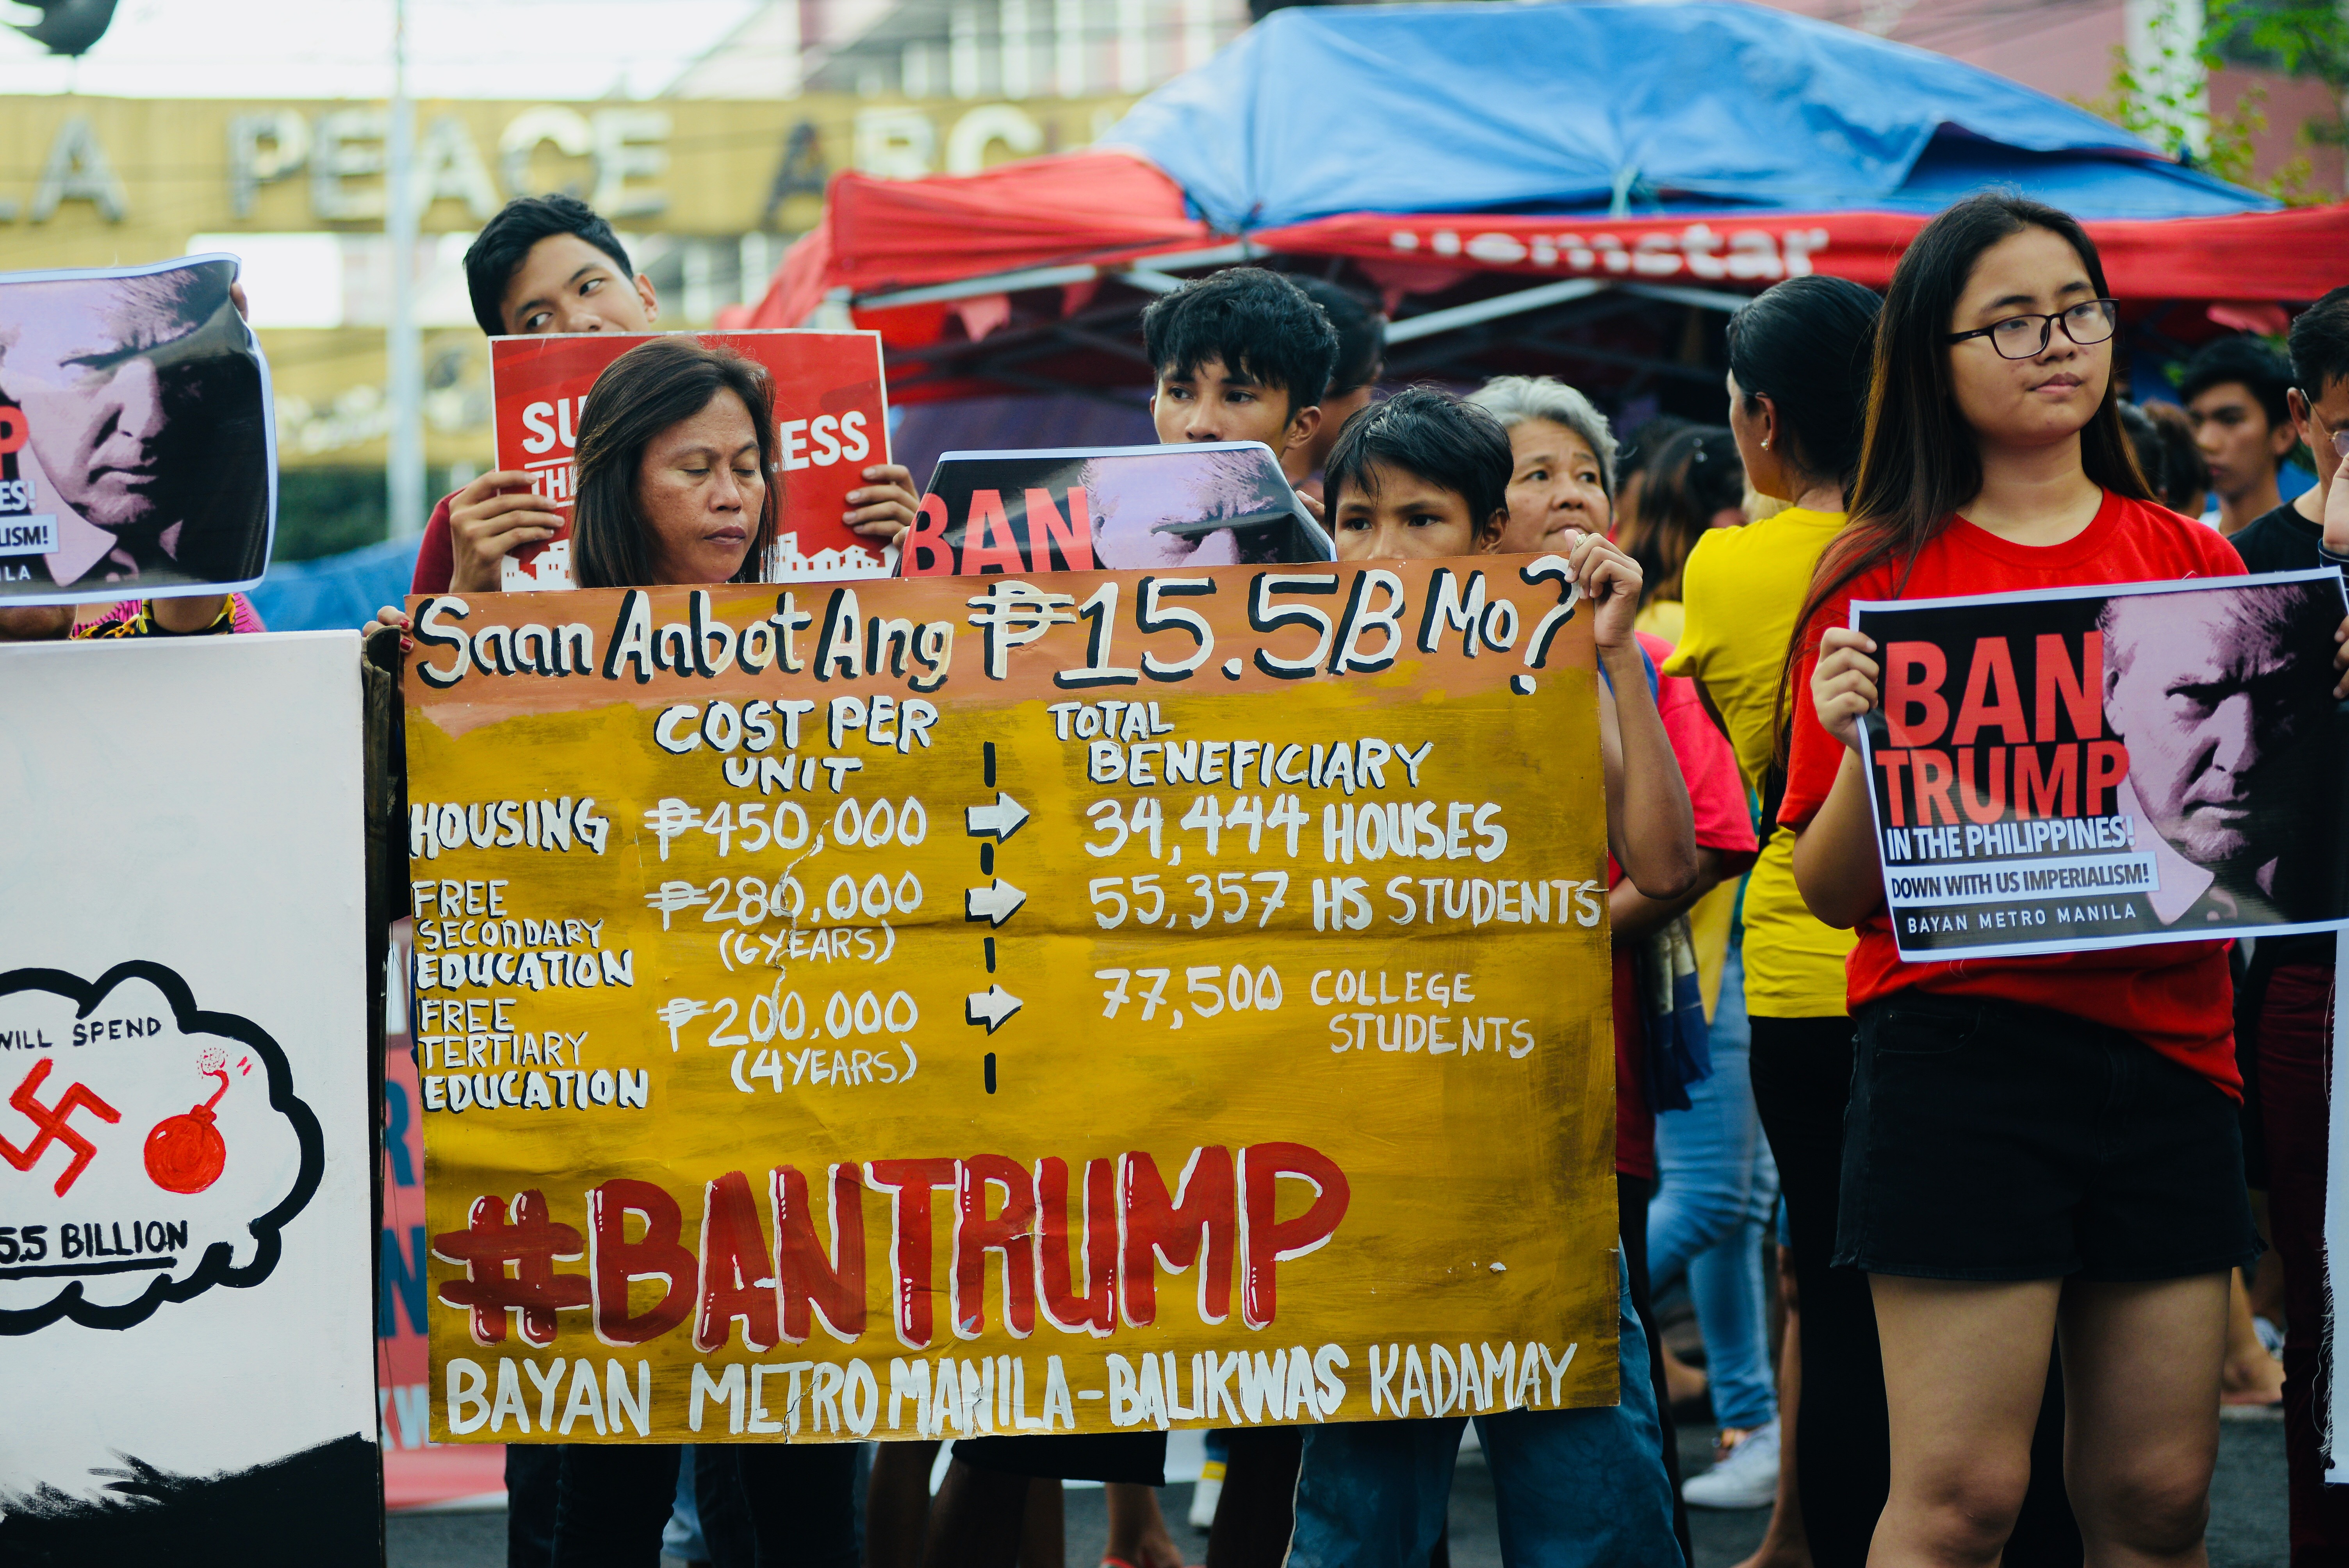 BASIC SOCIAL SERVICES. According to Kadamay, the P15.5 billion budget for the ASEAN summit could fund the creating of 34,444 low-cost housing or send 55,357 high school students and 77,5000 college students to school. Photo by Maria Tan/Rappler